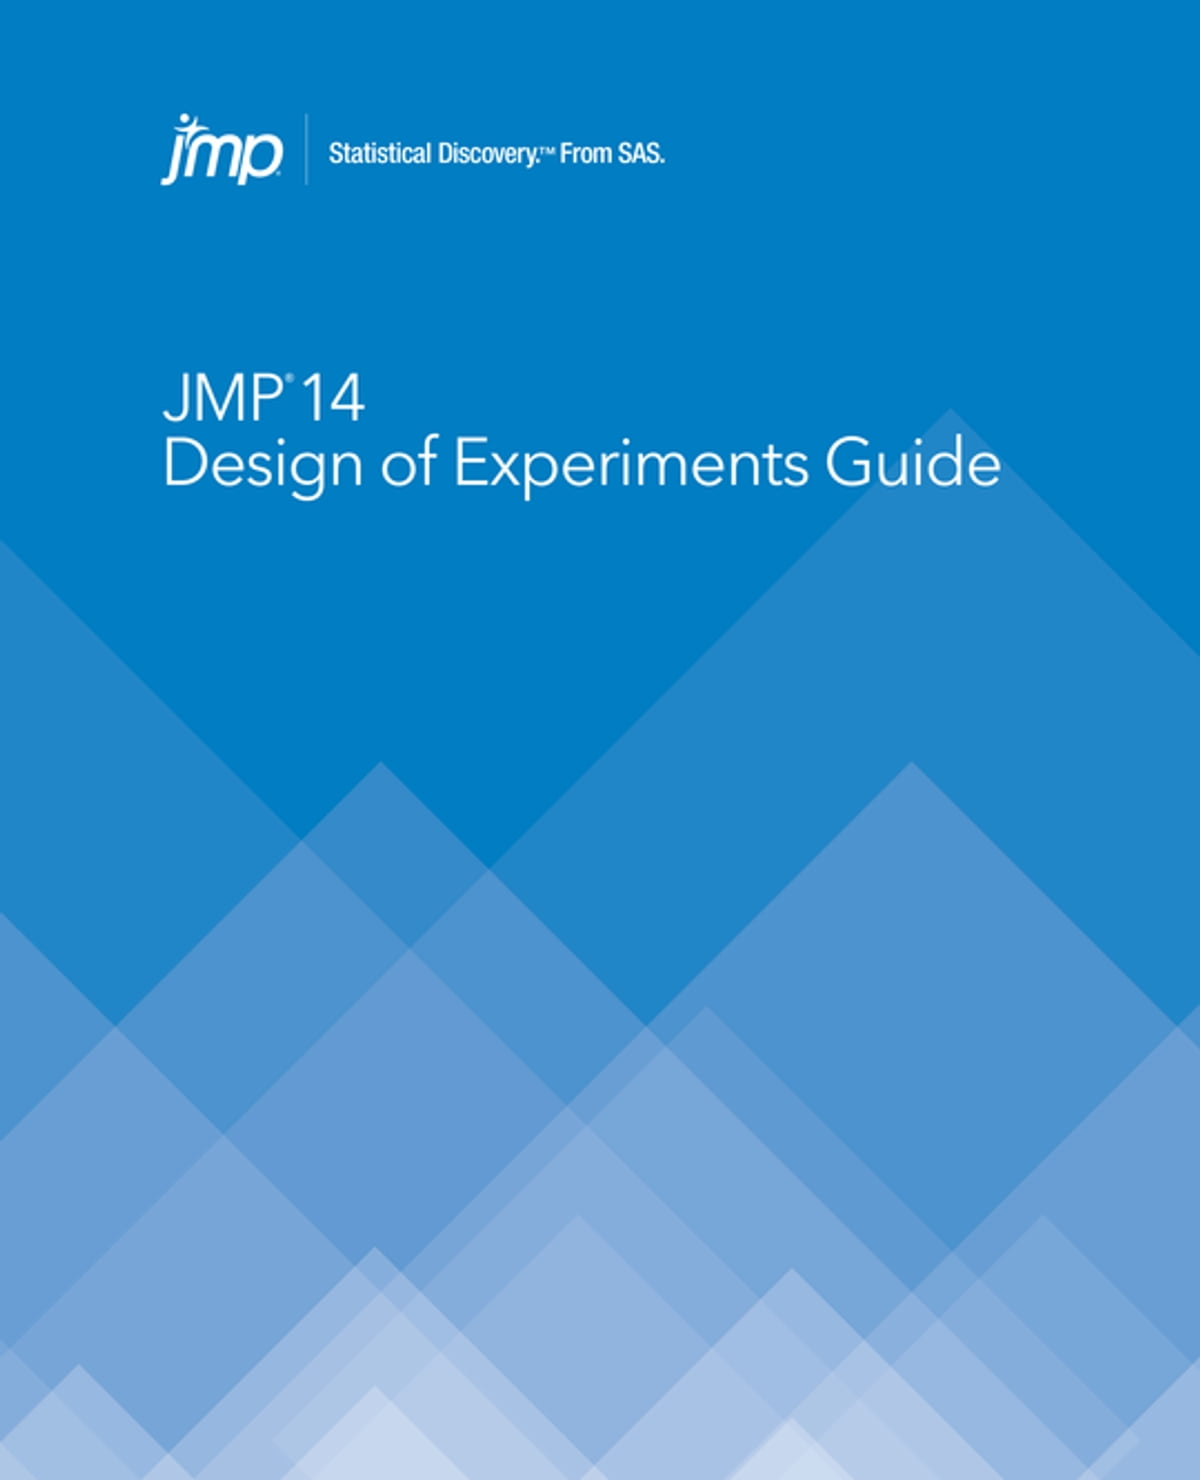 Jmp 14 Design Of Experiments Guide Ebook By Sas Institute